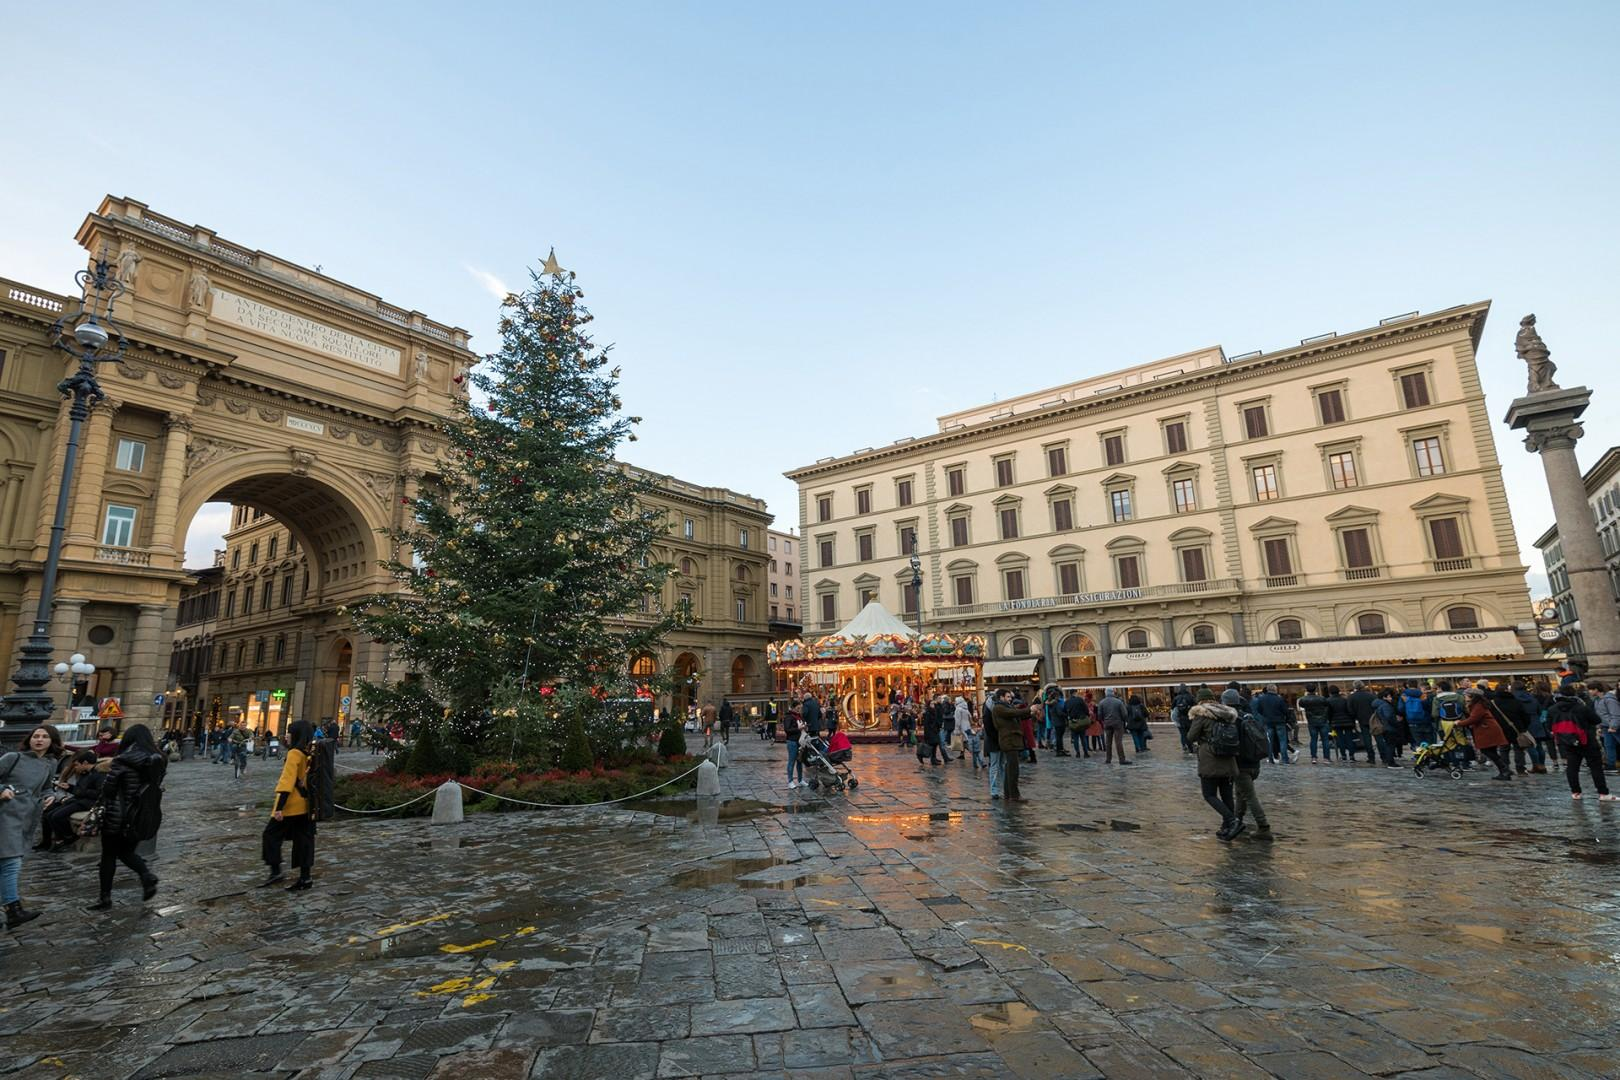 Piazza della Repubblica with its fine cafes, restaurants, merry-go-round & triumphal arch is nearby.